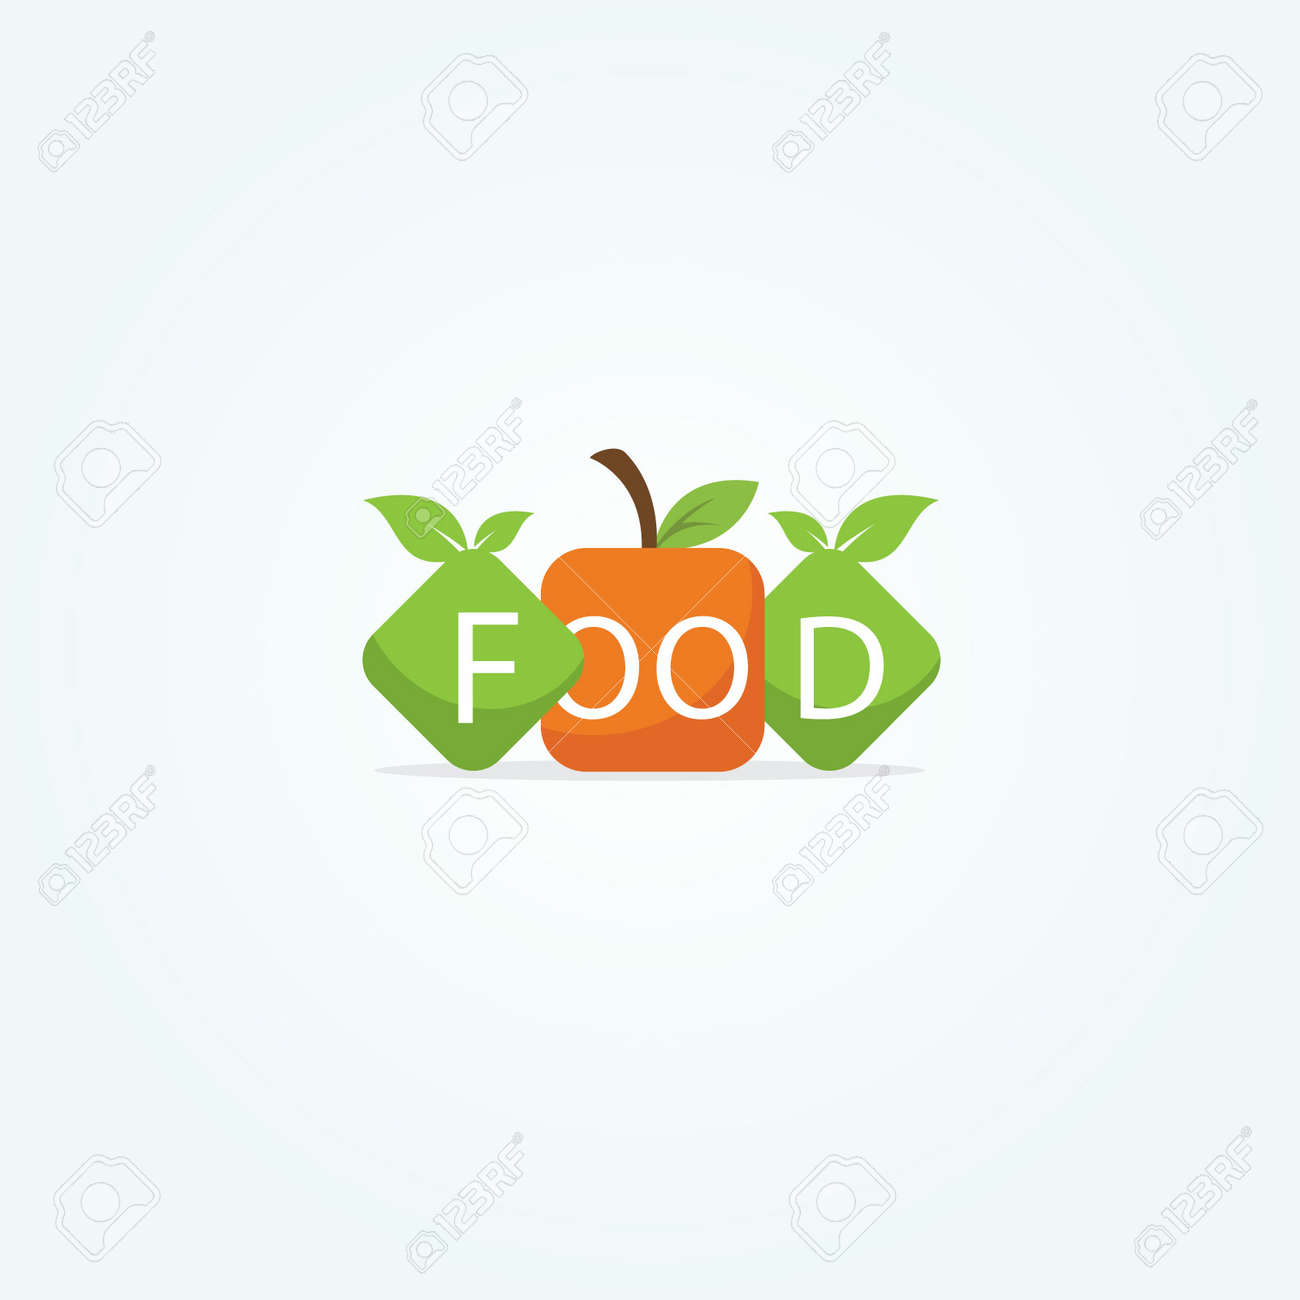 Restaurant Logo Design Healthy Food Lover Vector Icon Royalty Free Cliparts Vectors And Stock Illustration Image 103117827